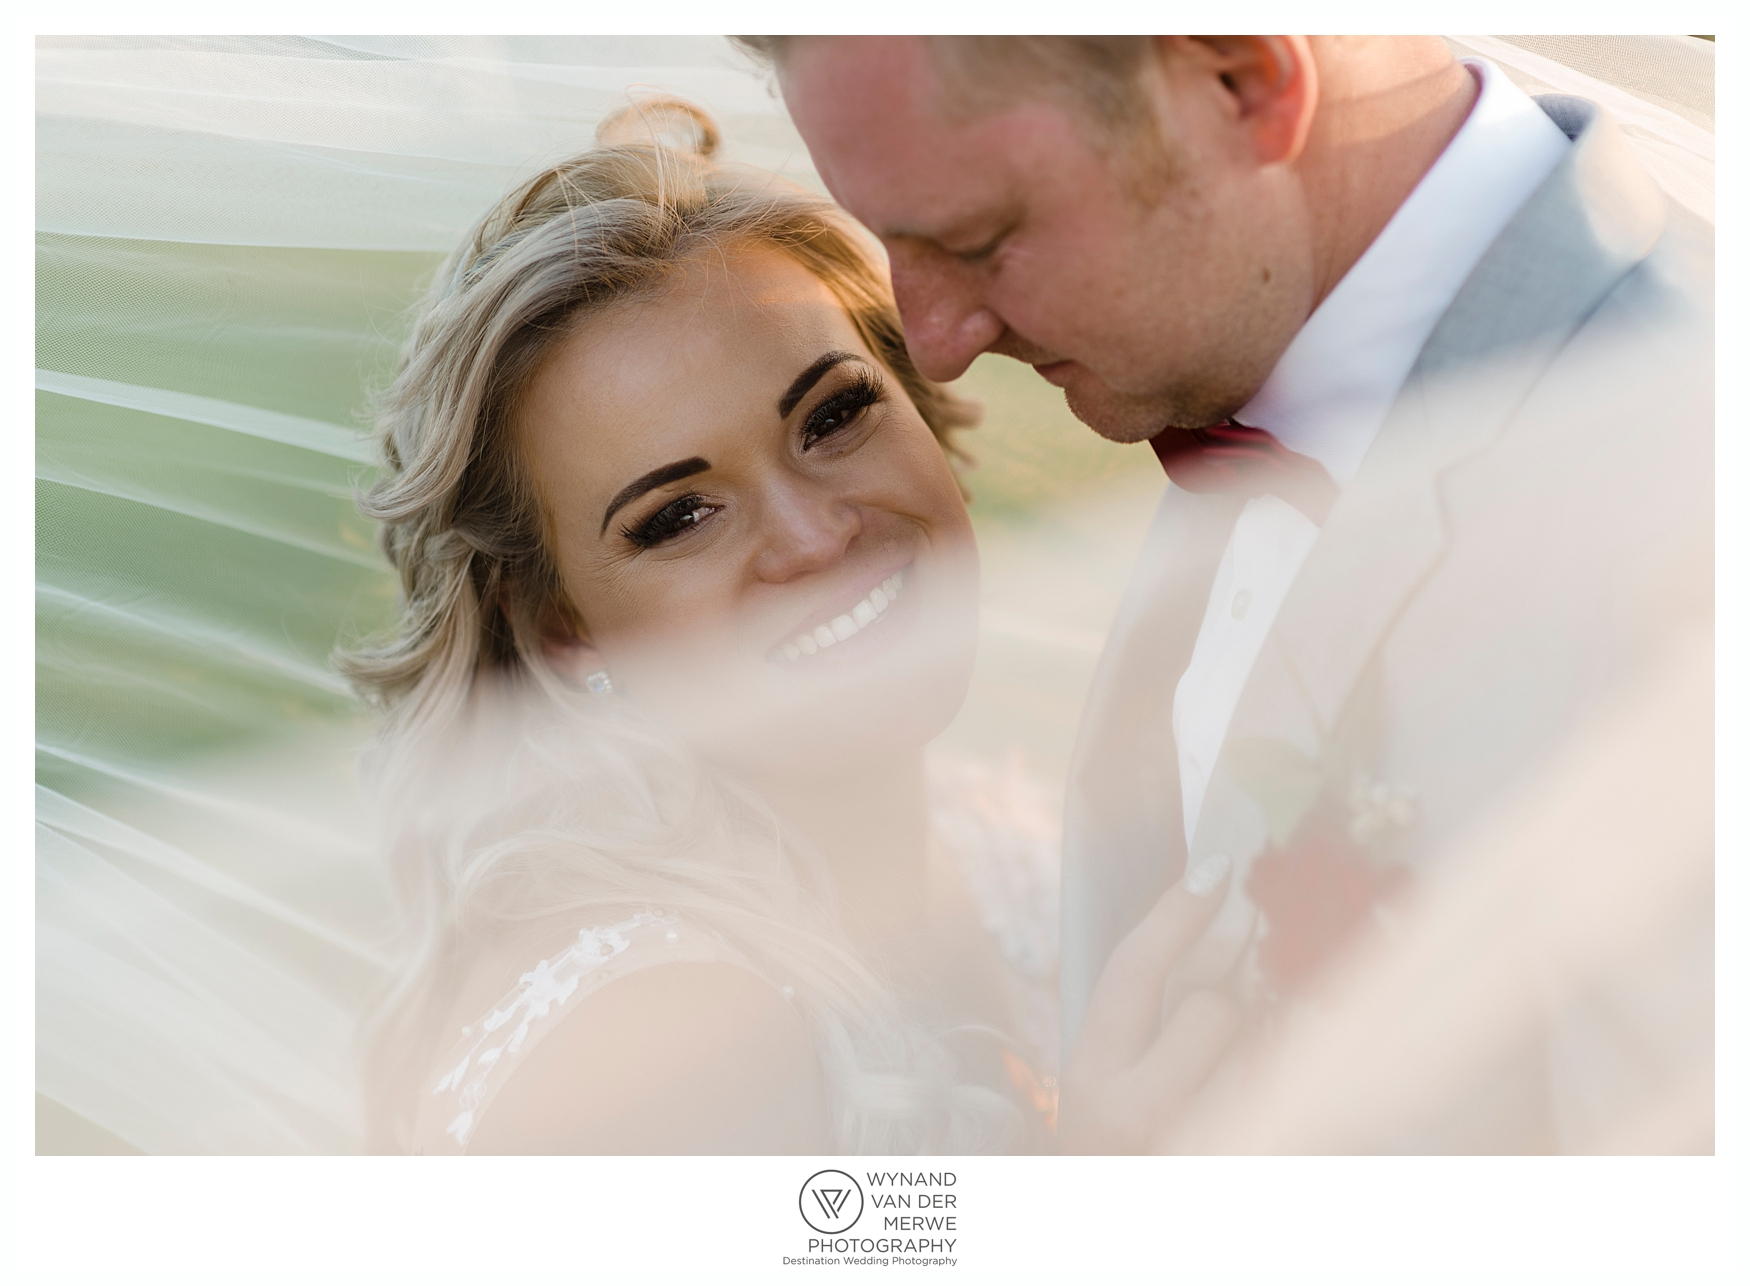 Wicus and Liesl's wedding at Tutuwedzo Lodge